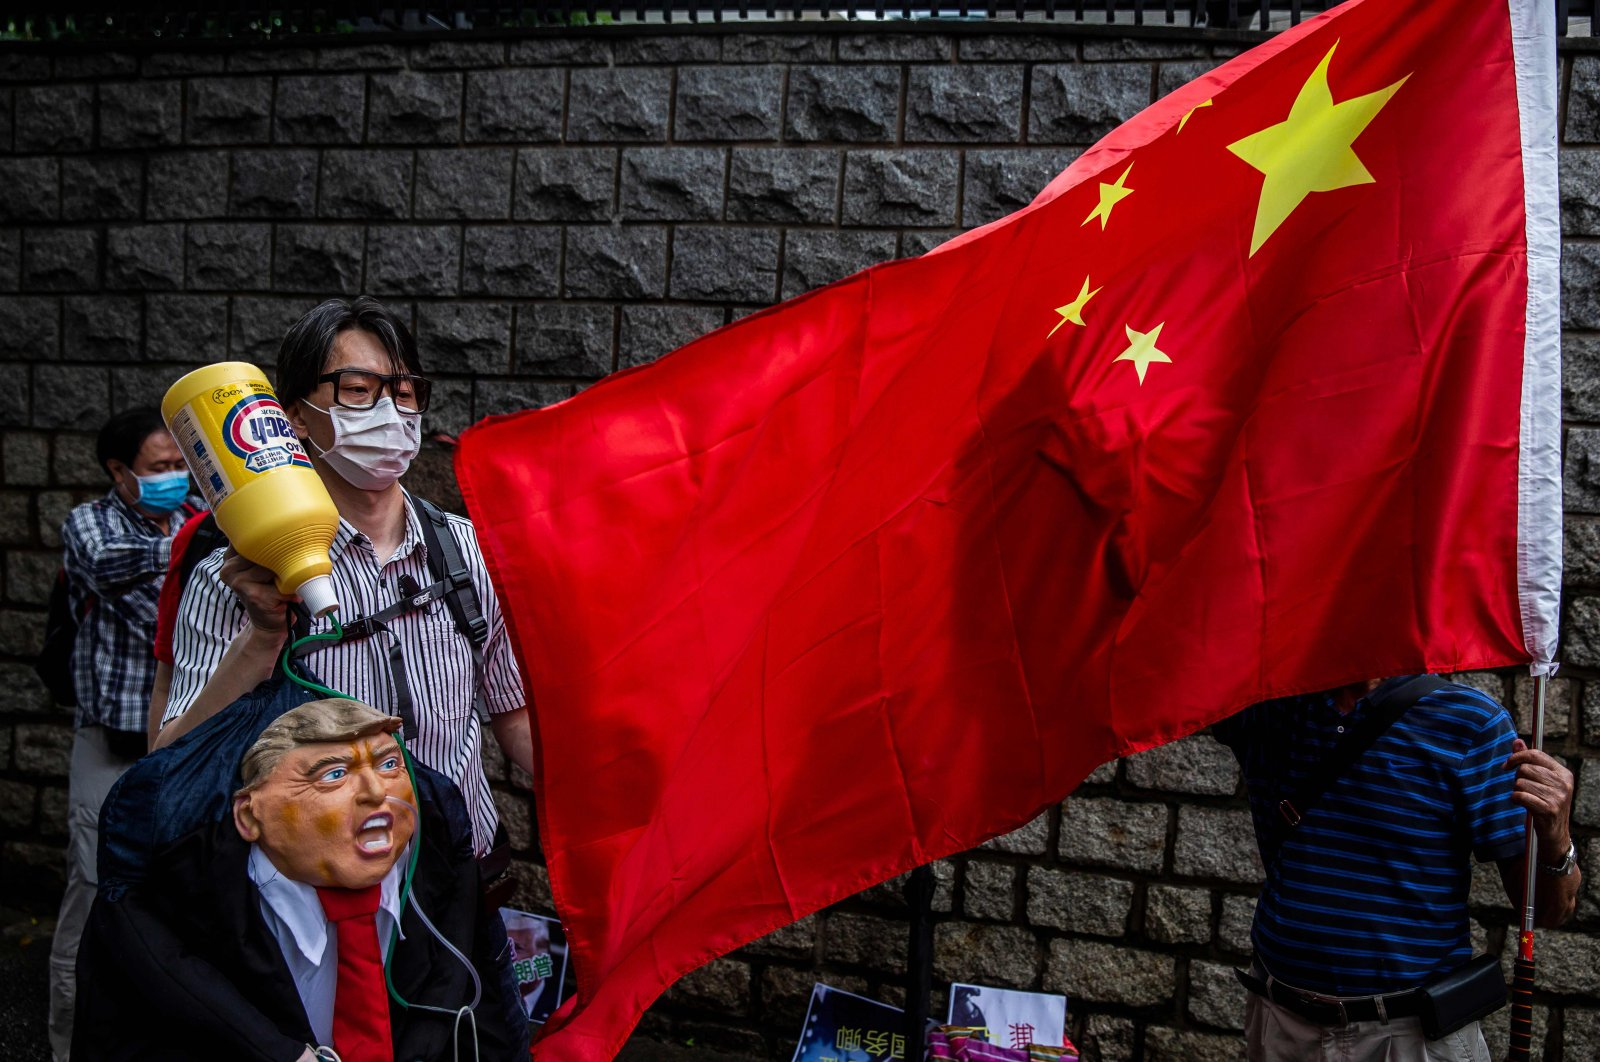 A pro-China activist holds an effigy of U.S. President Donald Trump during a protest outside the U.S. consulate in Hong Kong, May 30, 2020. (AFP Photo)